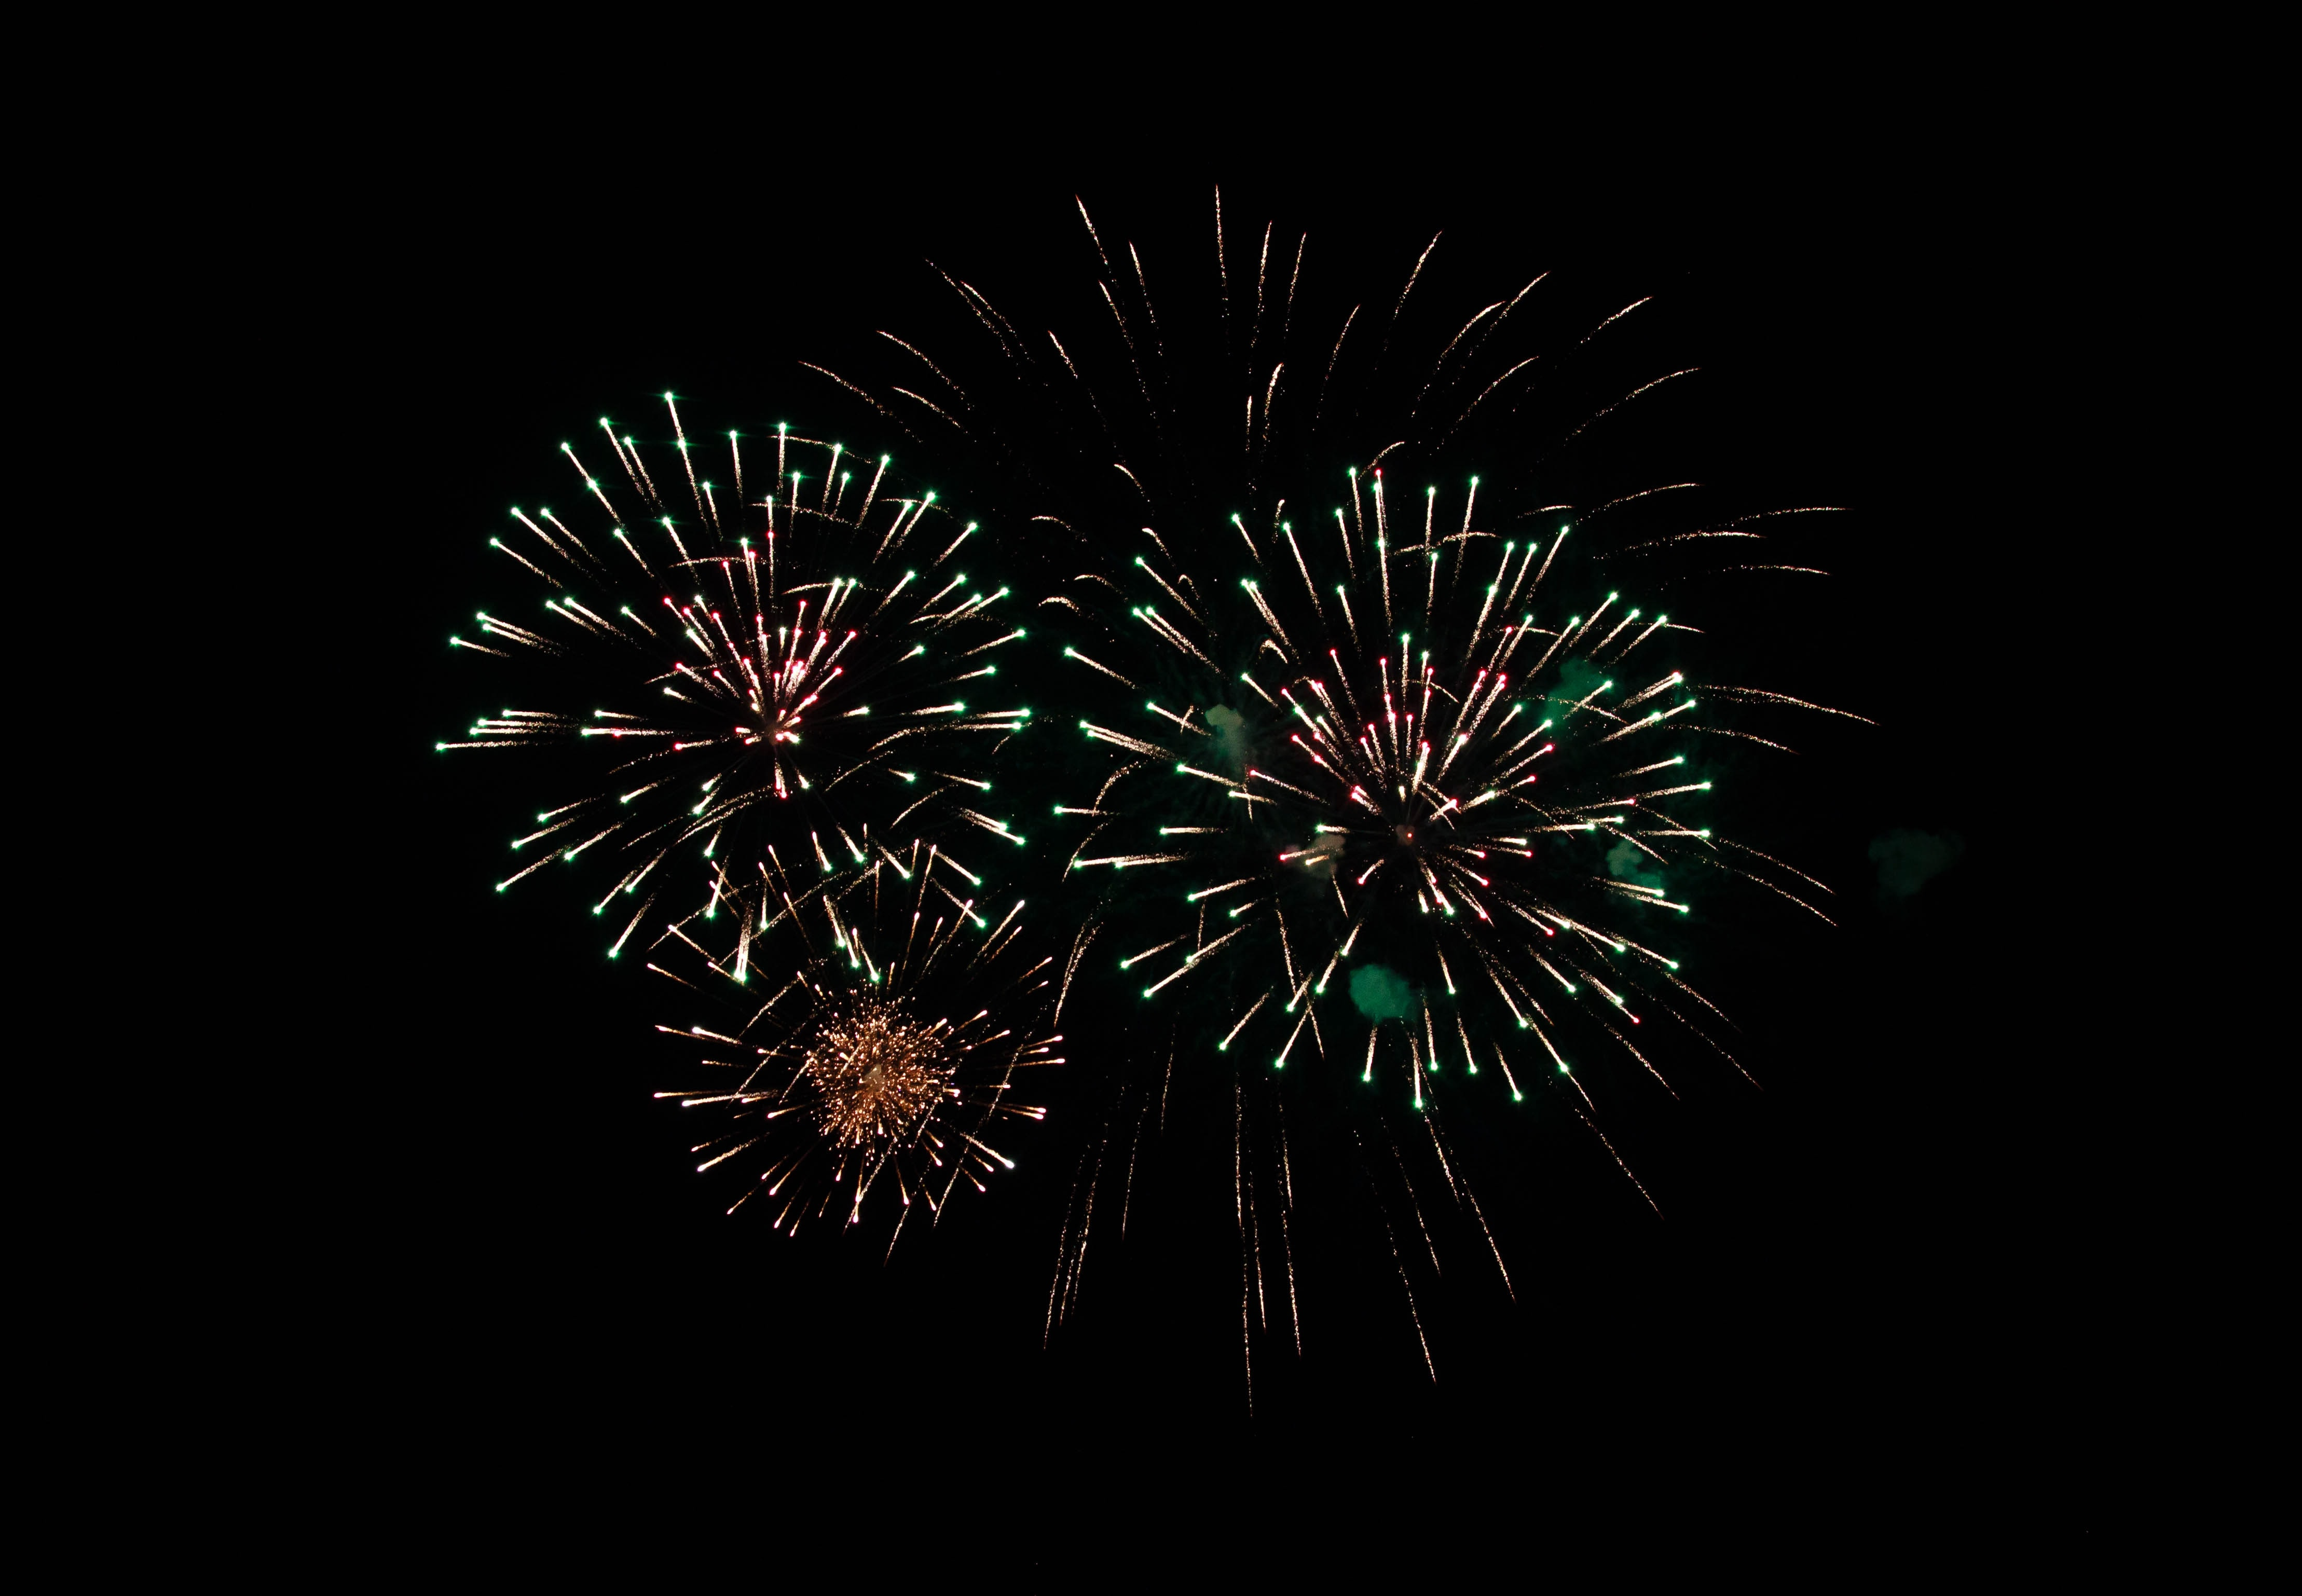 53072 download wallpaper Holidays, Night, Sparks, Holiday, Fireworks, Firework screensavers and pictures for free